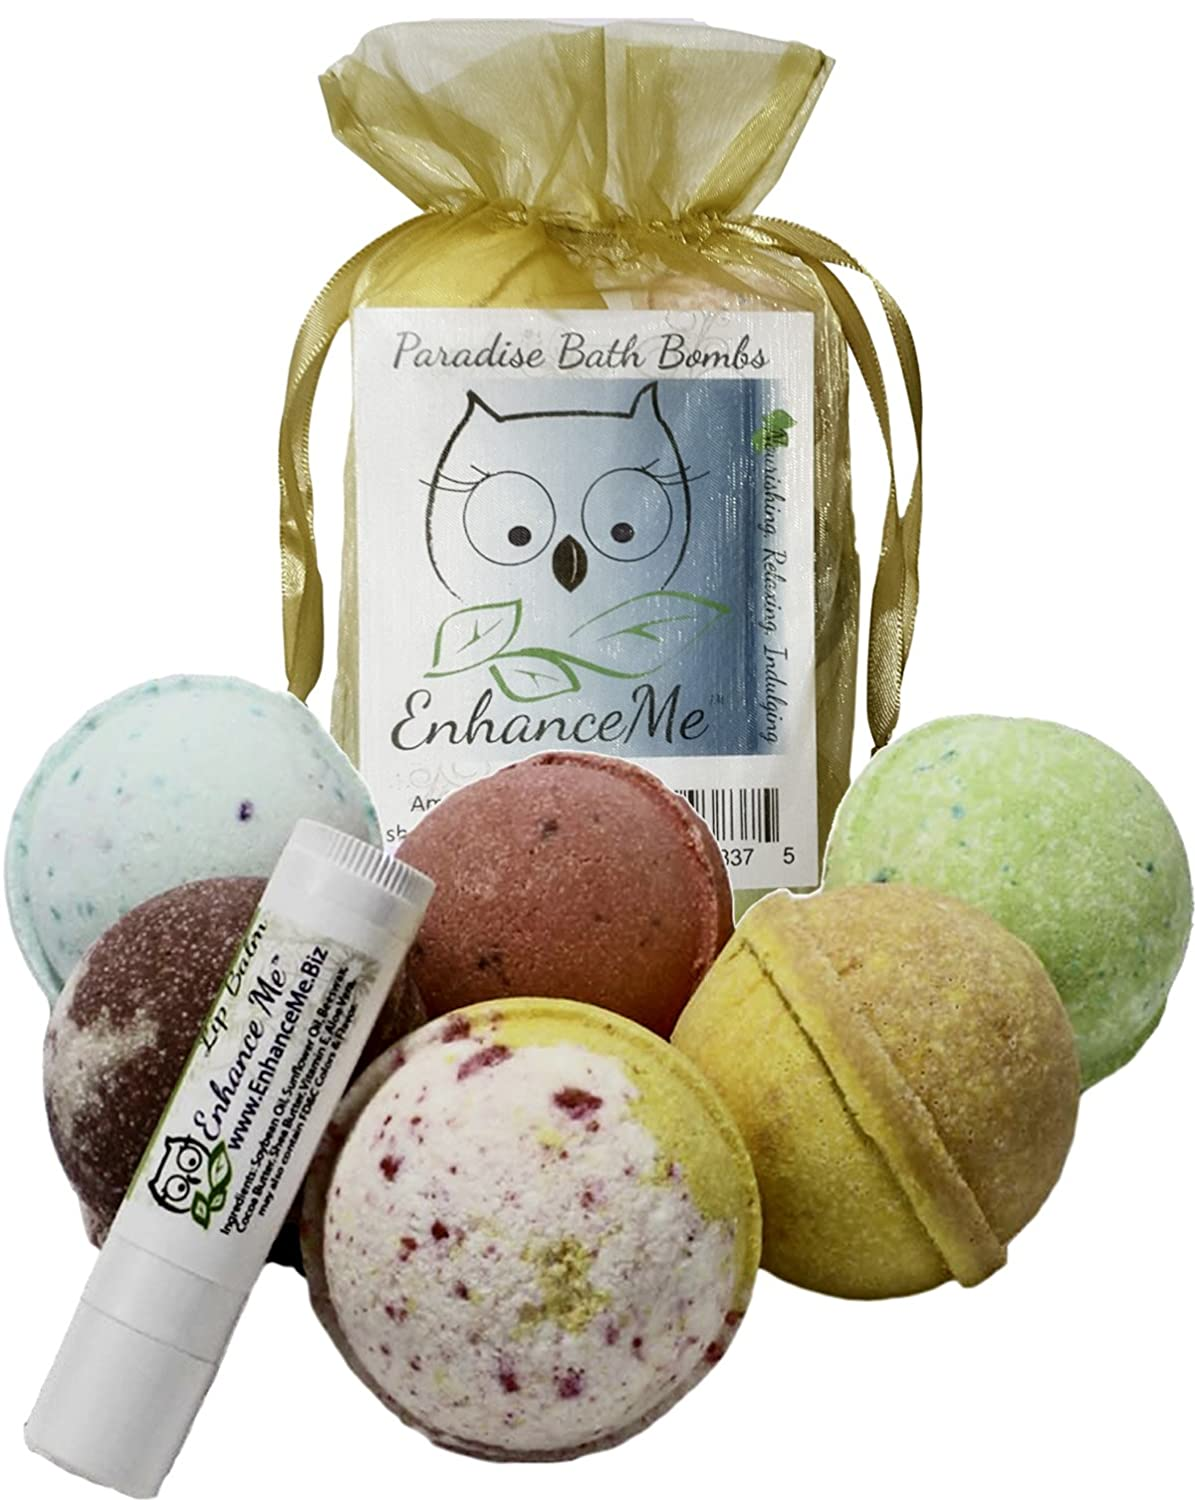 Bath Bombs, w/FREE Lip Balm Easter Gift Set, Organic Sustainable Palm Oil, from Enhance Me, Handmade in USA with Lush Shea Butter, Coconut Oil, 6 Bomb Gift Set, 'See, Smell, & Feel the Difference'